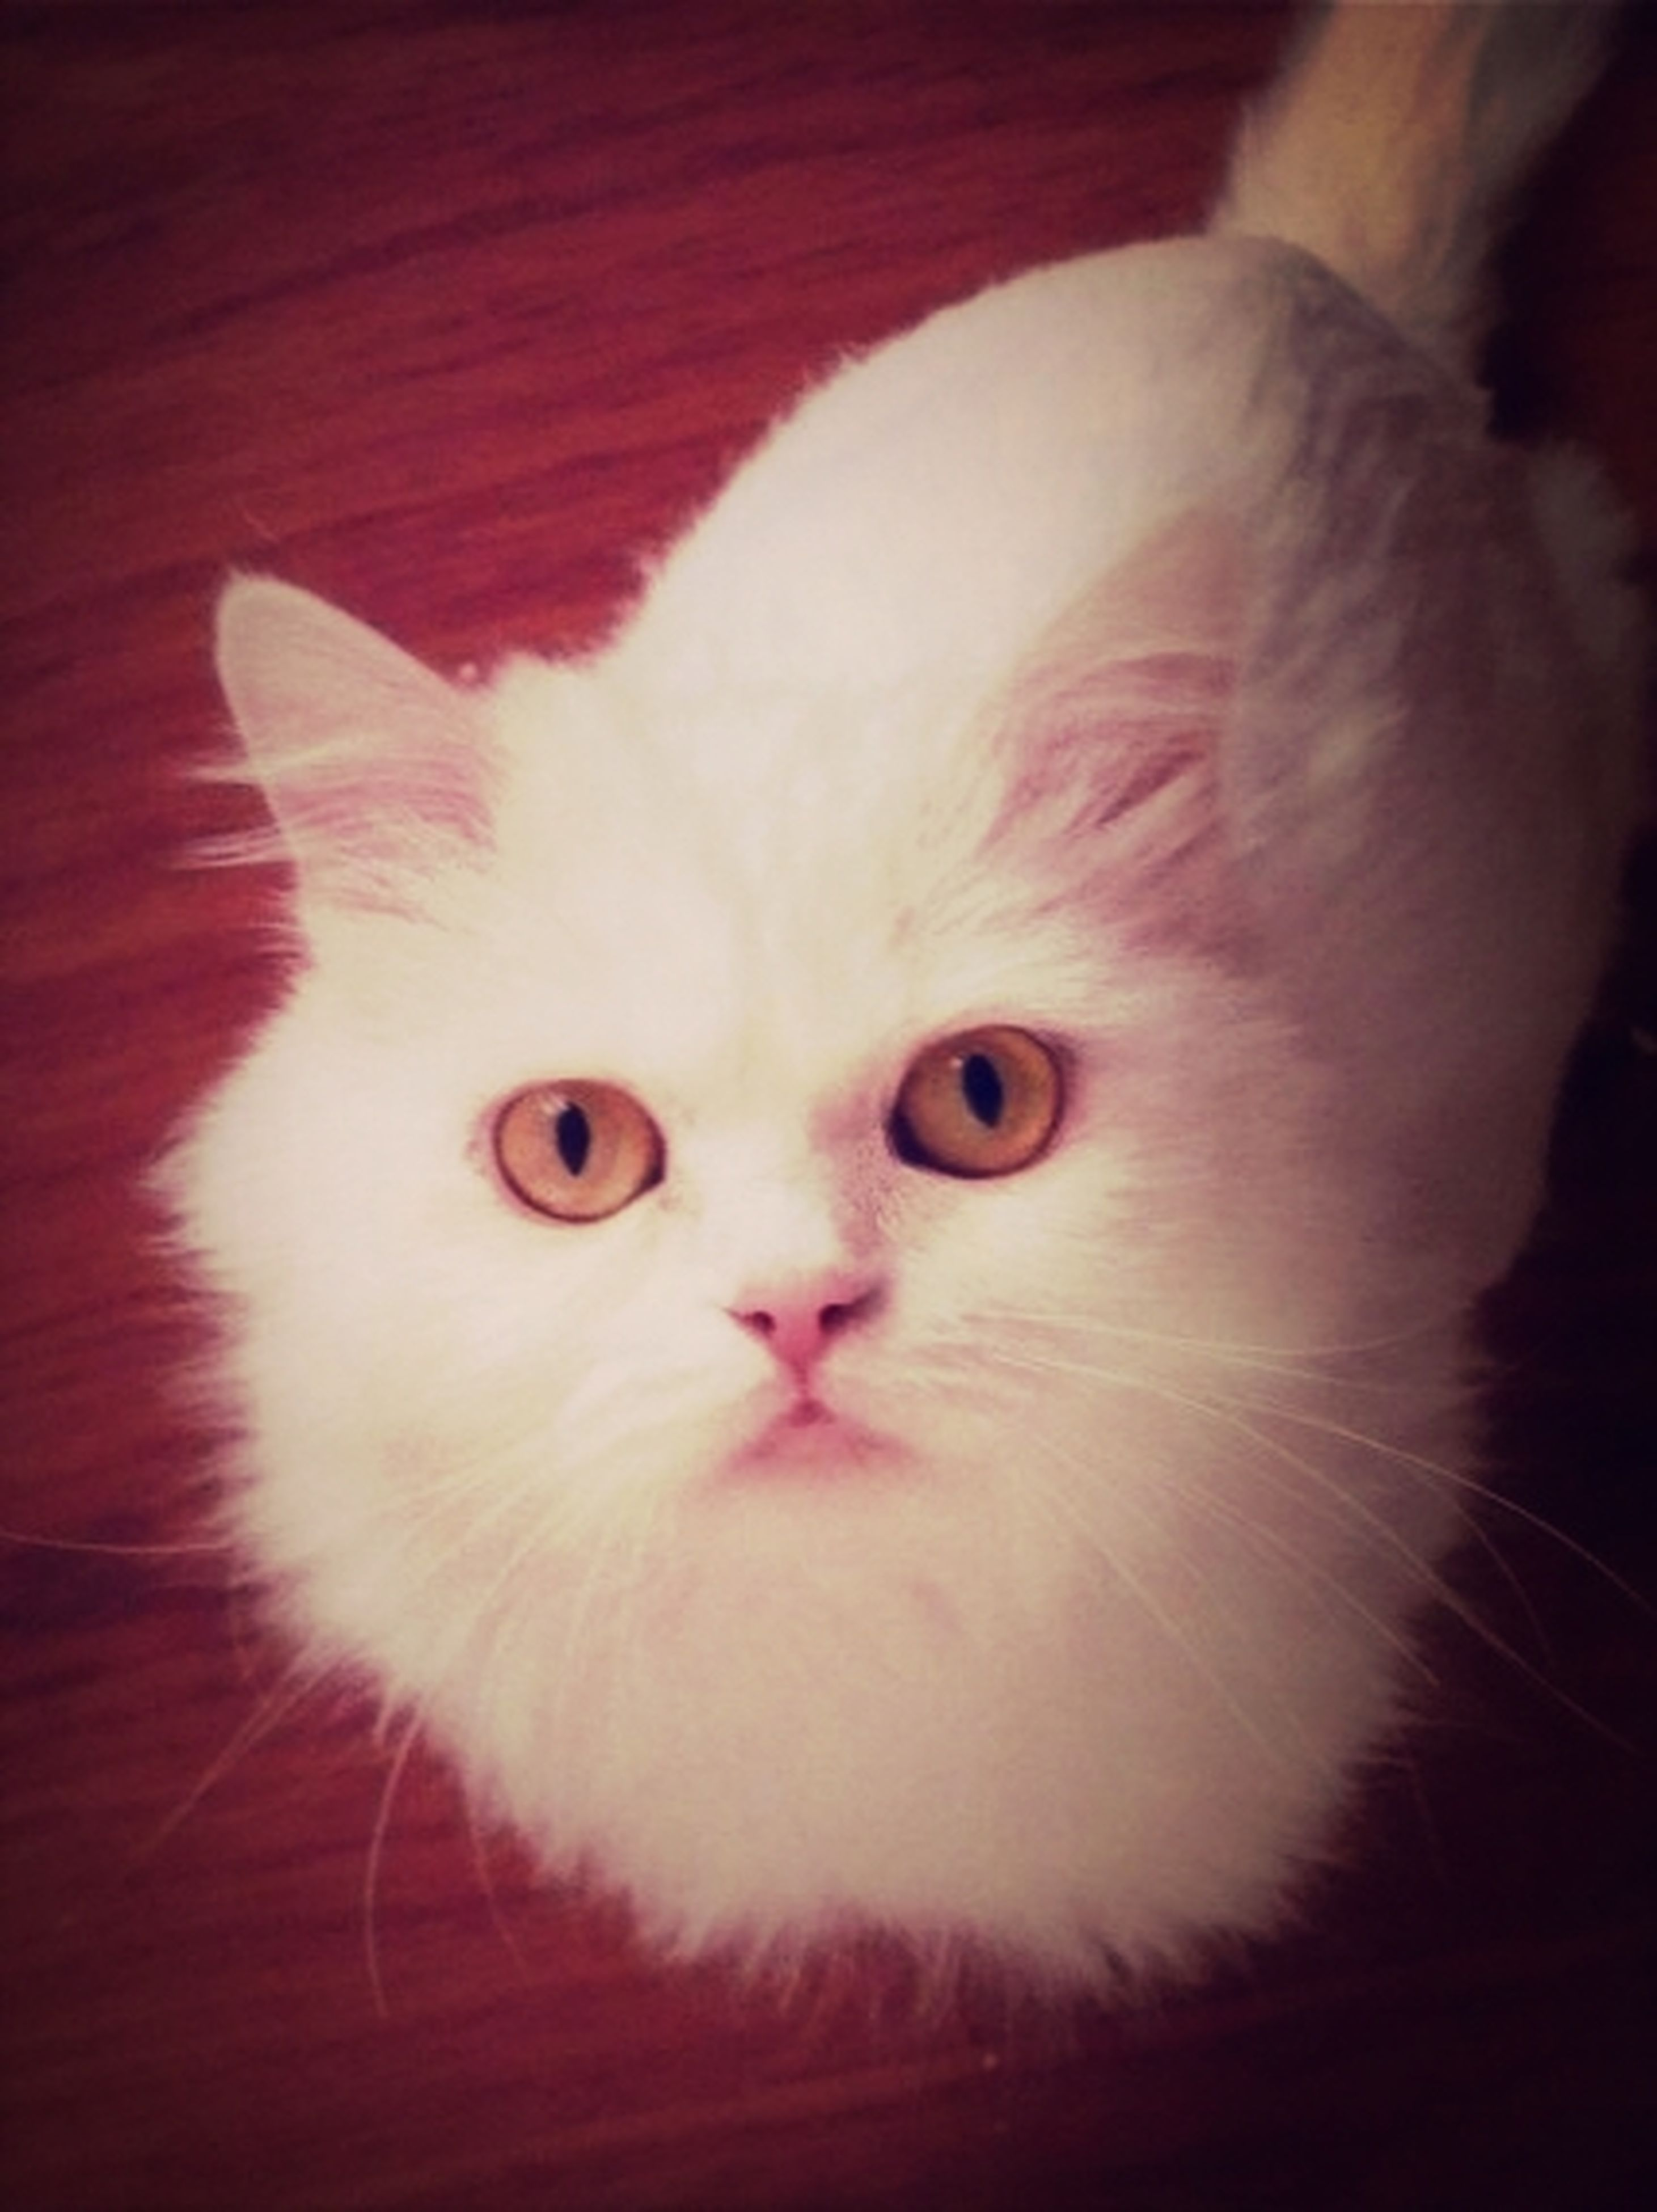 domestic cat, indoors, cat, pets, domestic animals, animal themes, one animal, feline, whisker, looking at camera, portrait, close-up, white color, mammal, animal eye, animal head, staring, home interior, cute, front view